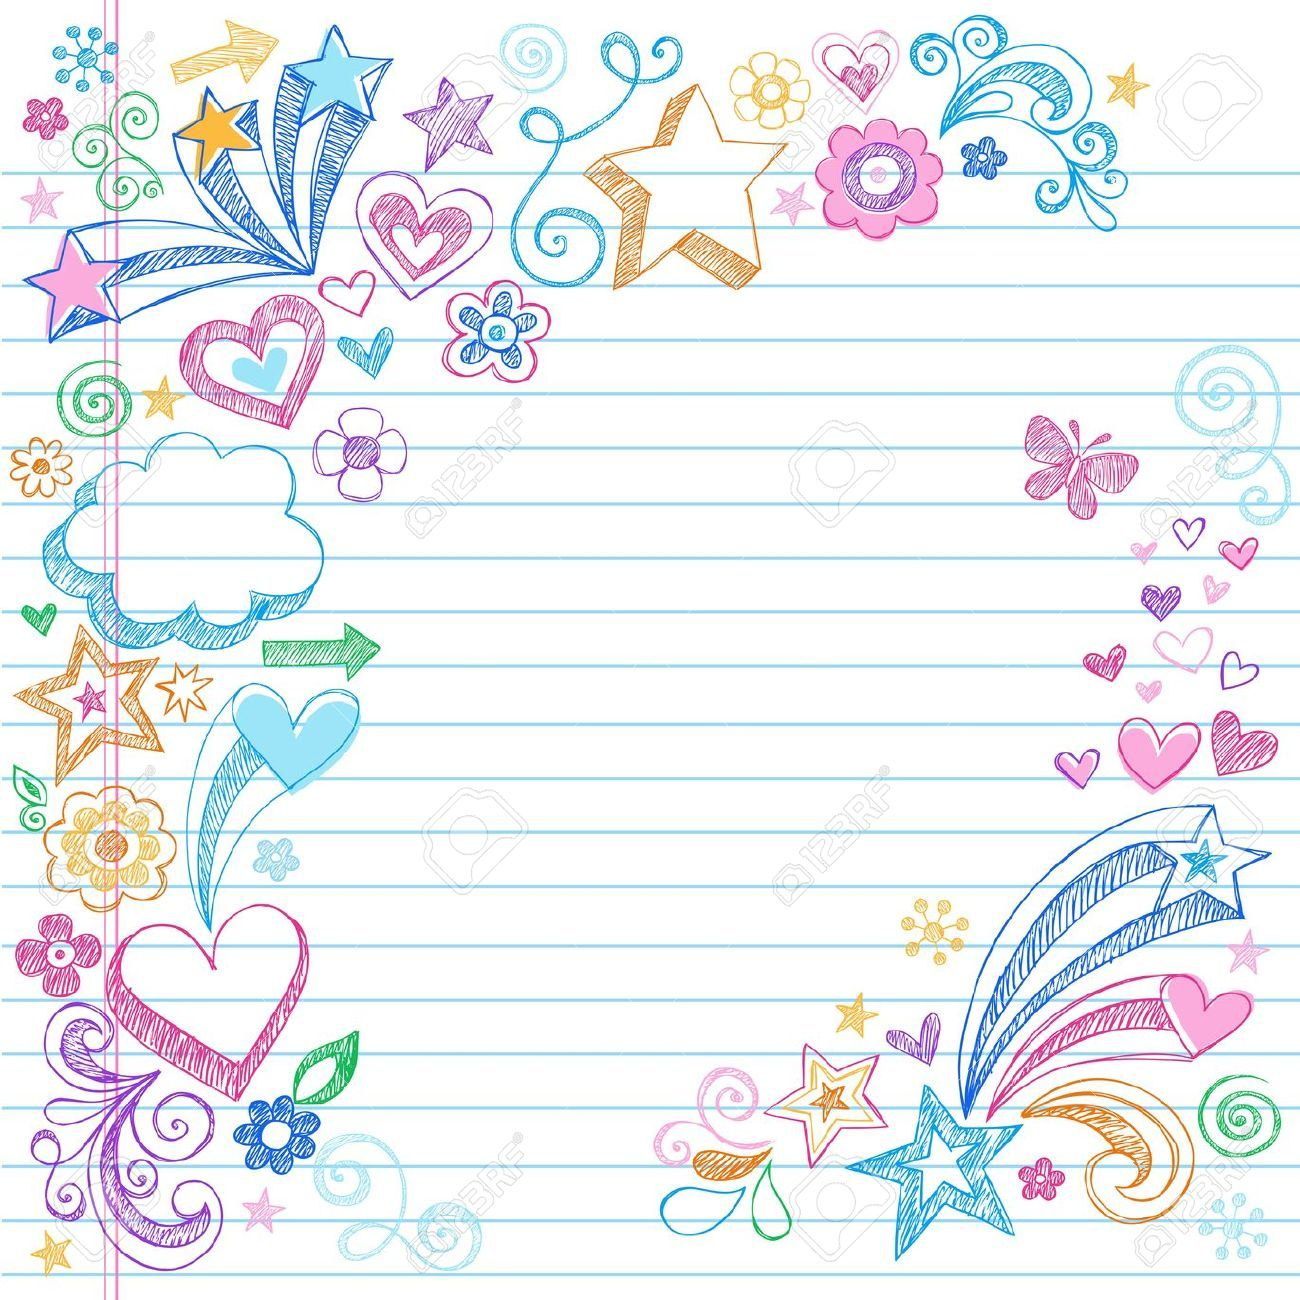 background cute notebook - Google Search | backgrounds ...